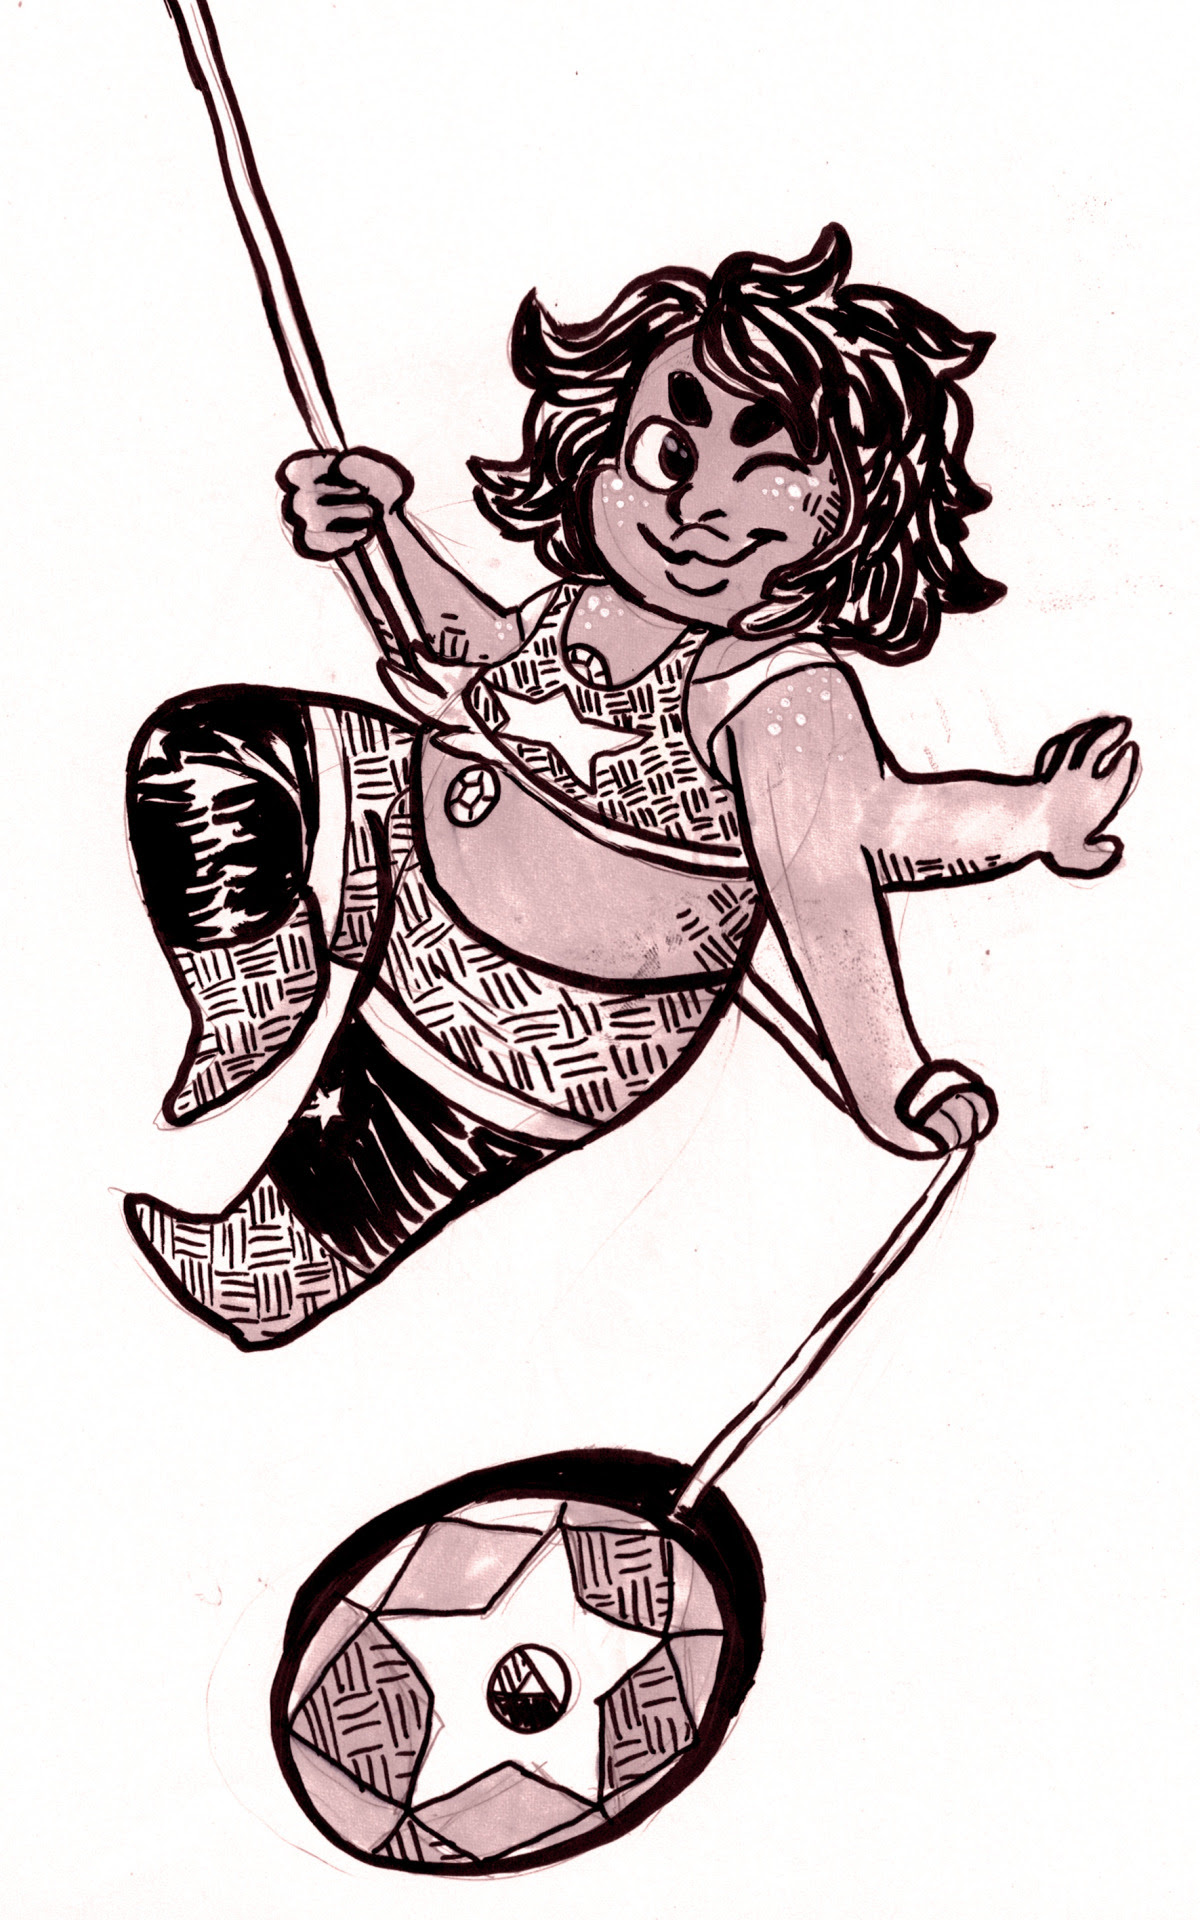 here's a smoky quartz for my day 10 inktober. sorry theyre late i've been rlly busy!